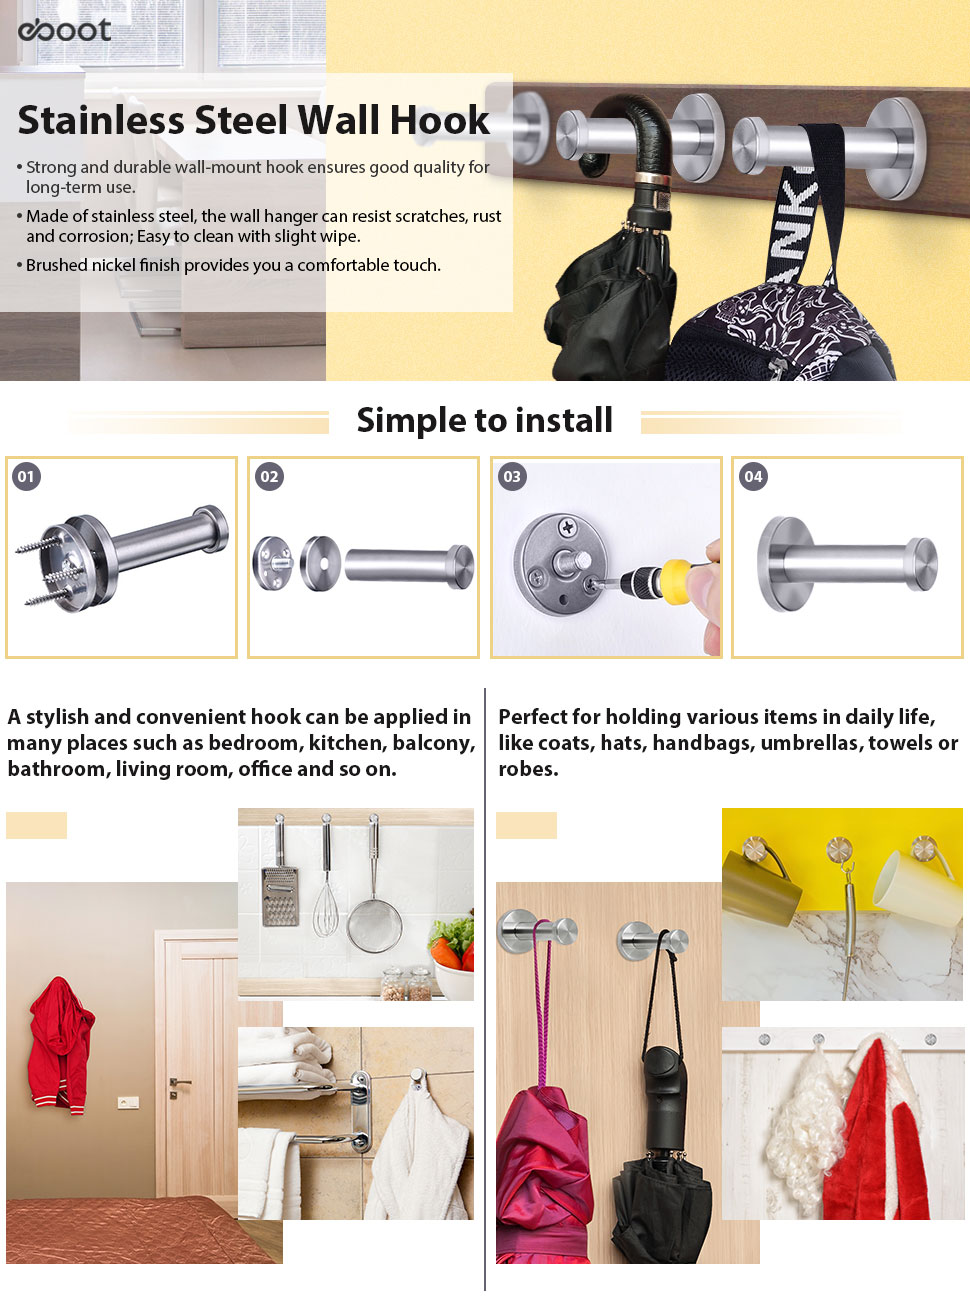 Satin stainless steel wall mounted hook - The Simple Wall Hook Is Designed For Home Storage And Organization Saving Space And Looking For Something Quickly